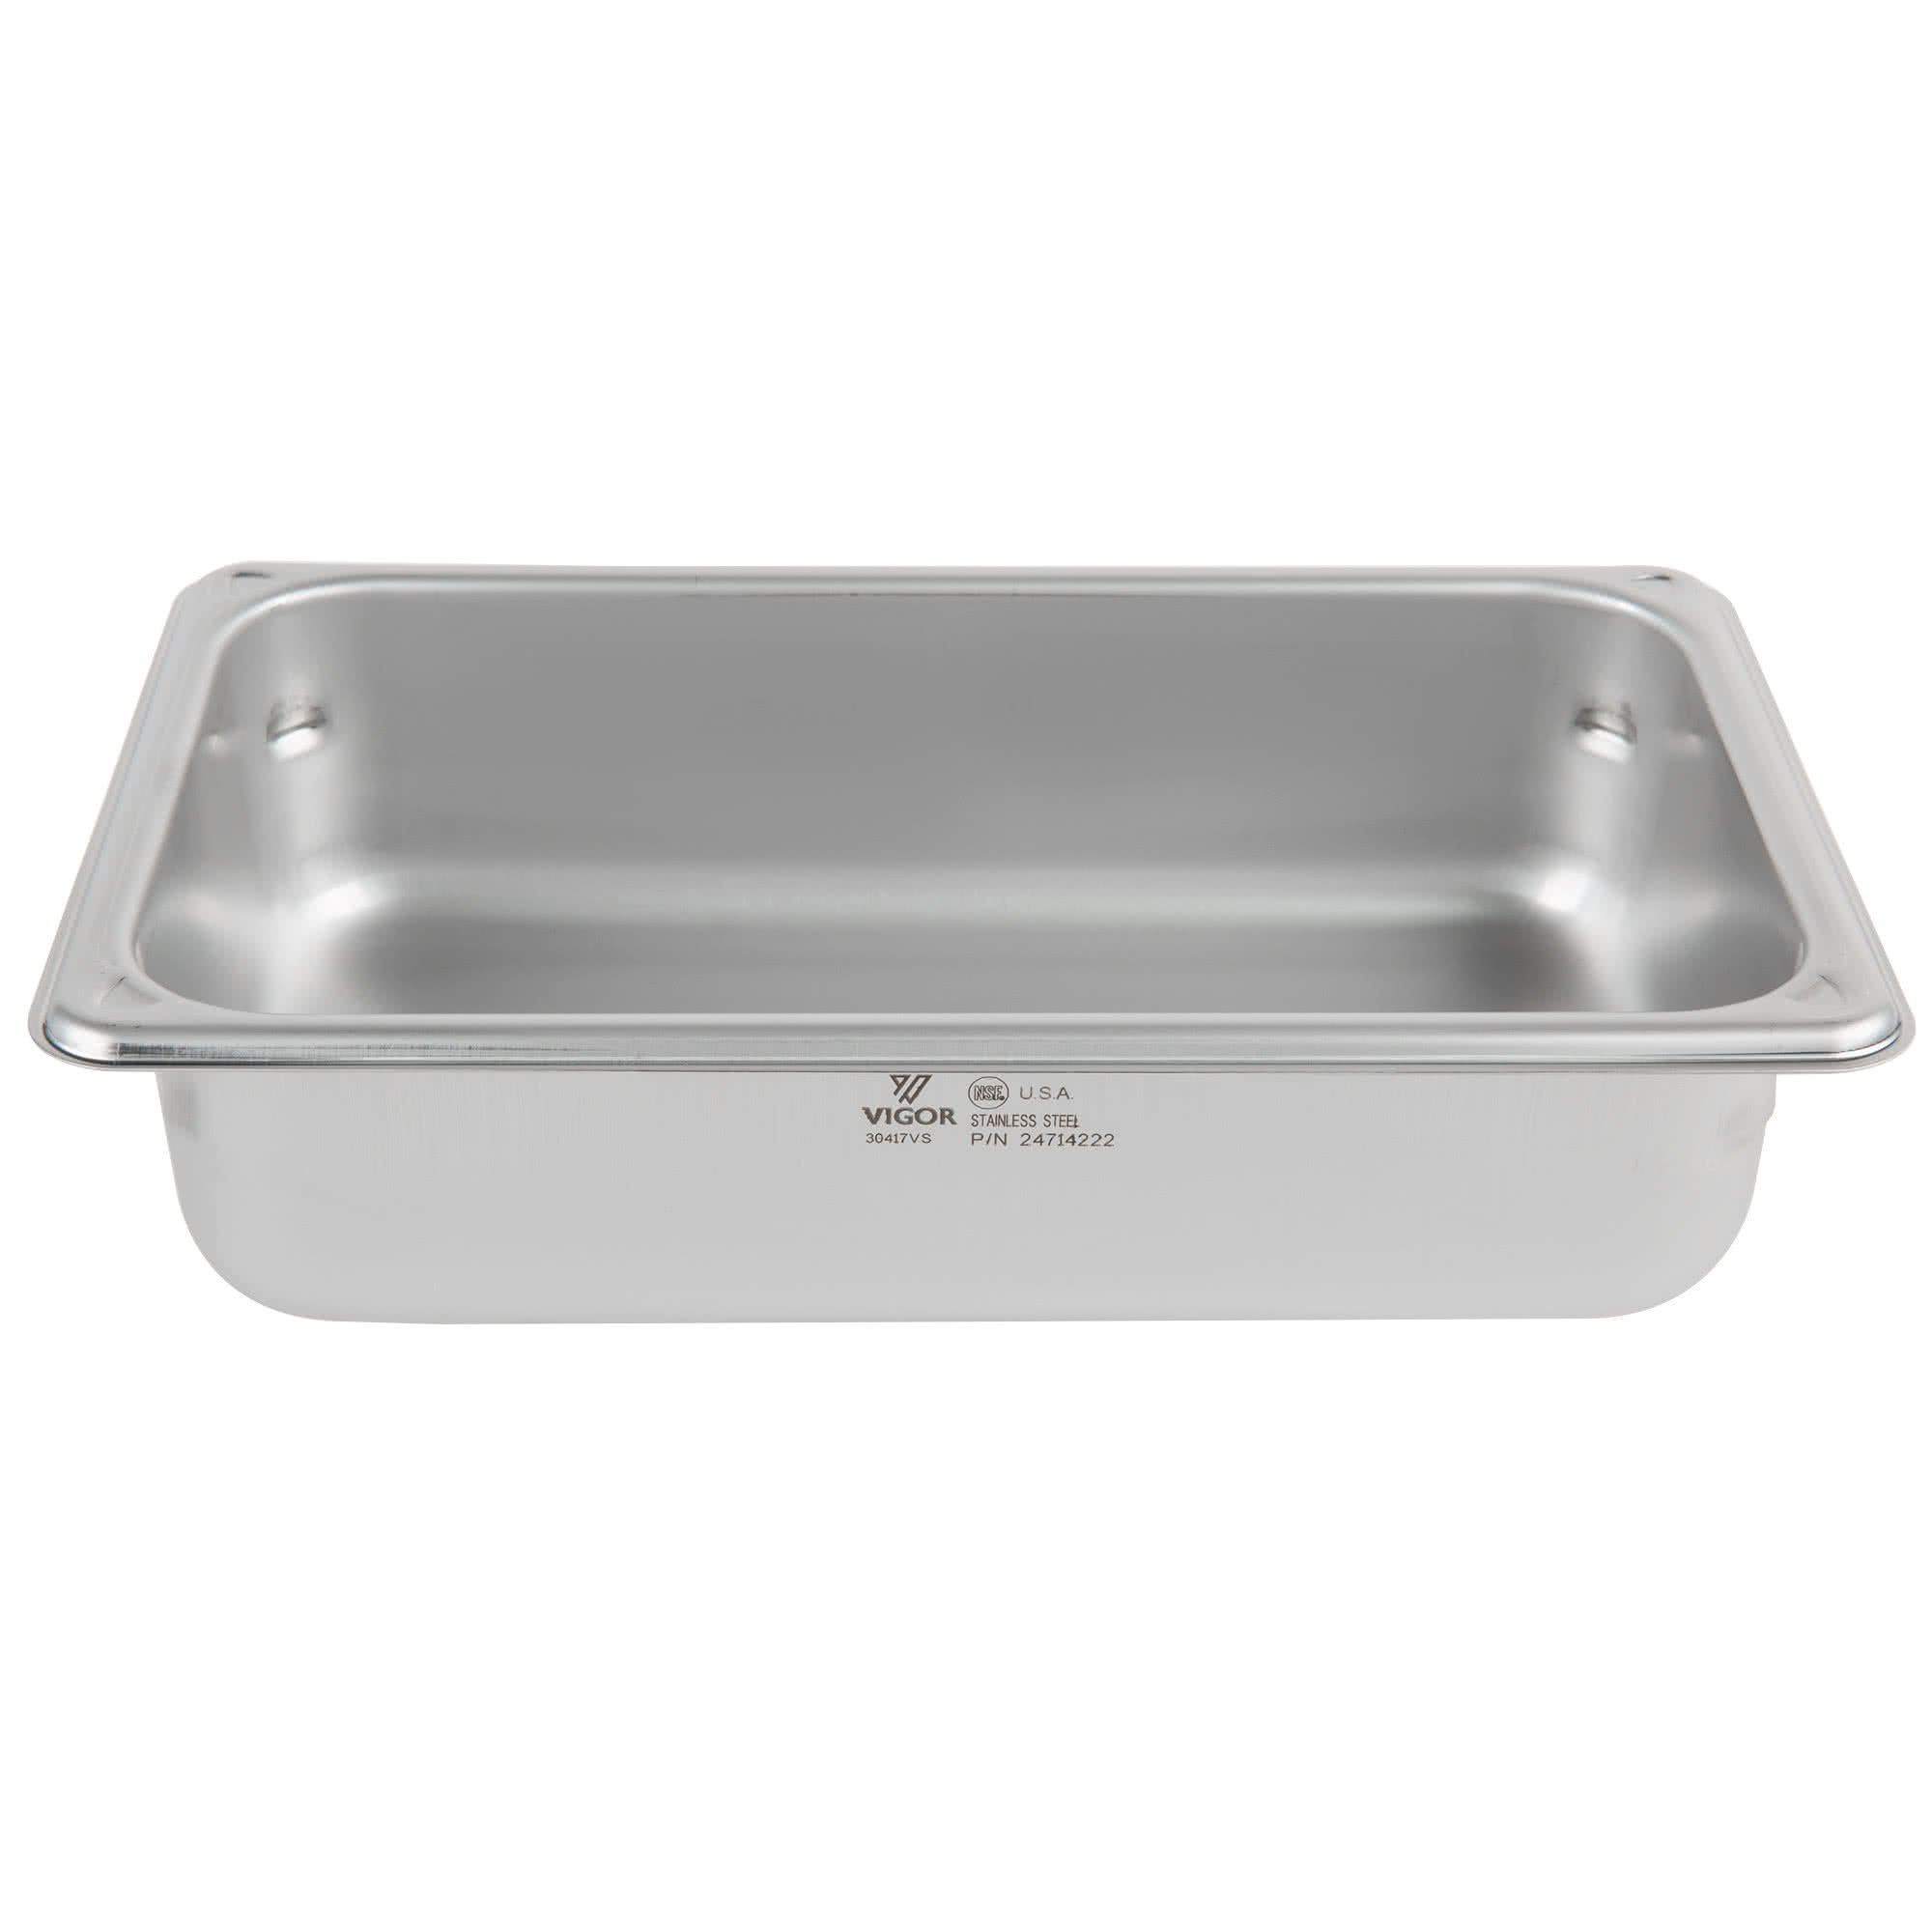 TableTop King 1/4 Size Anti-Jam Stainless Steel Steam Table / Hotel Pan - 2 1/2'' Deep